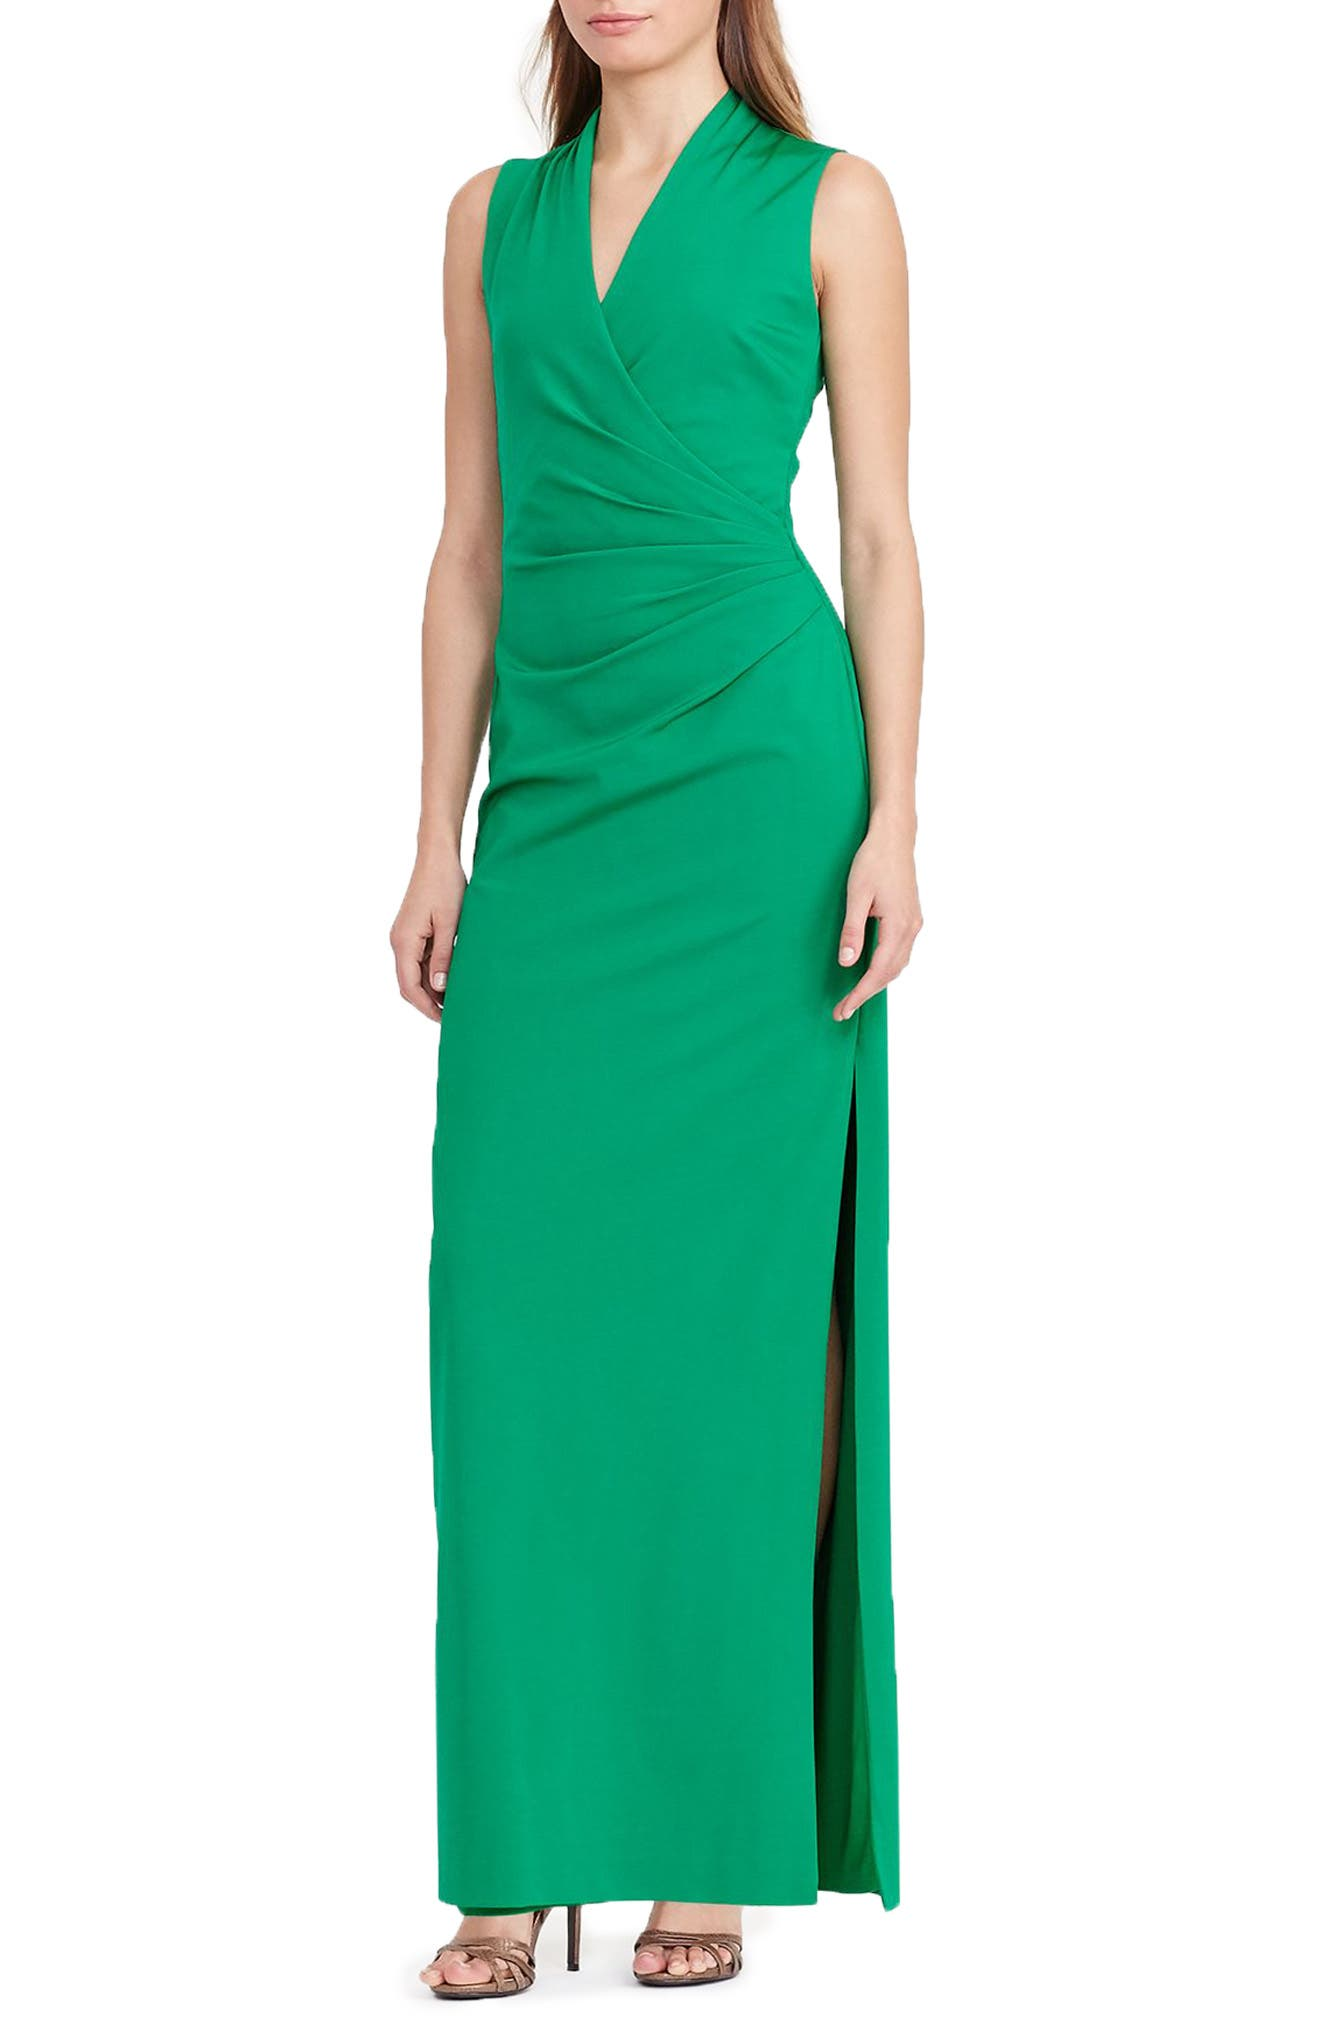 Alternate Image 1 Selected - Lauren Ralph Lauren Ruched Gown (Regular & Petite)